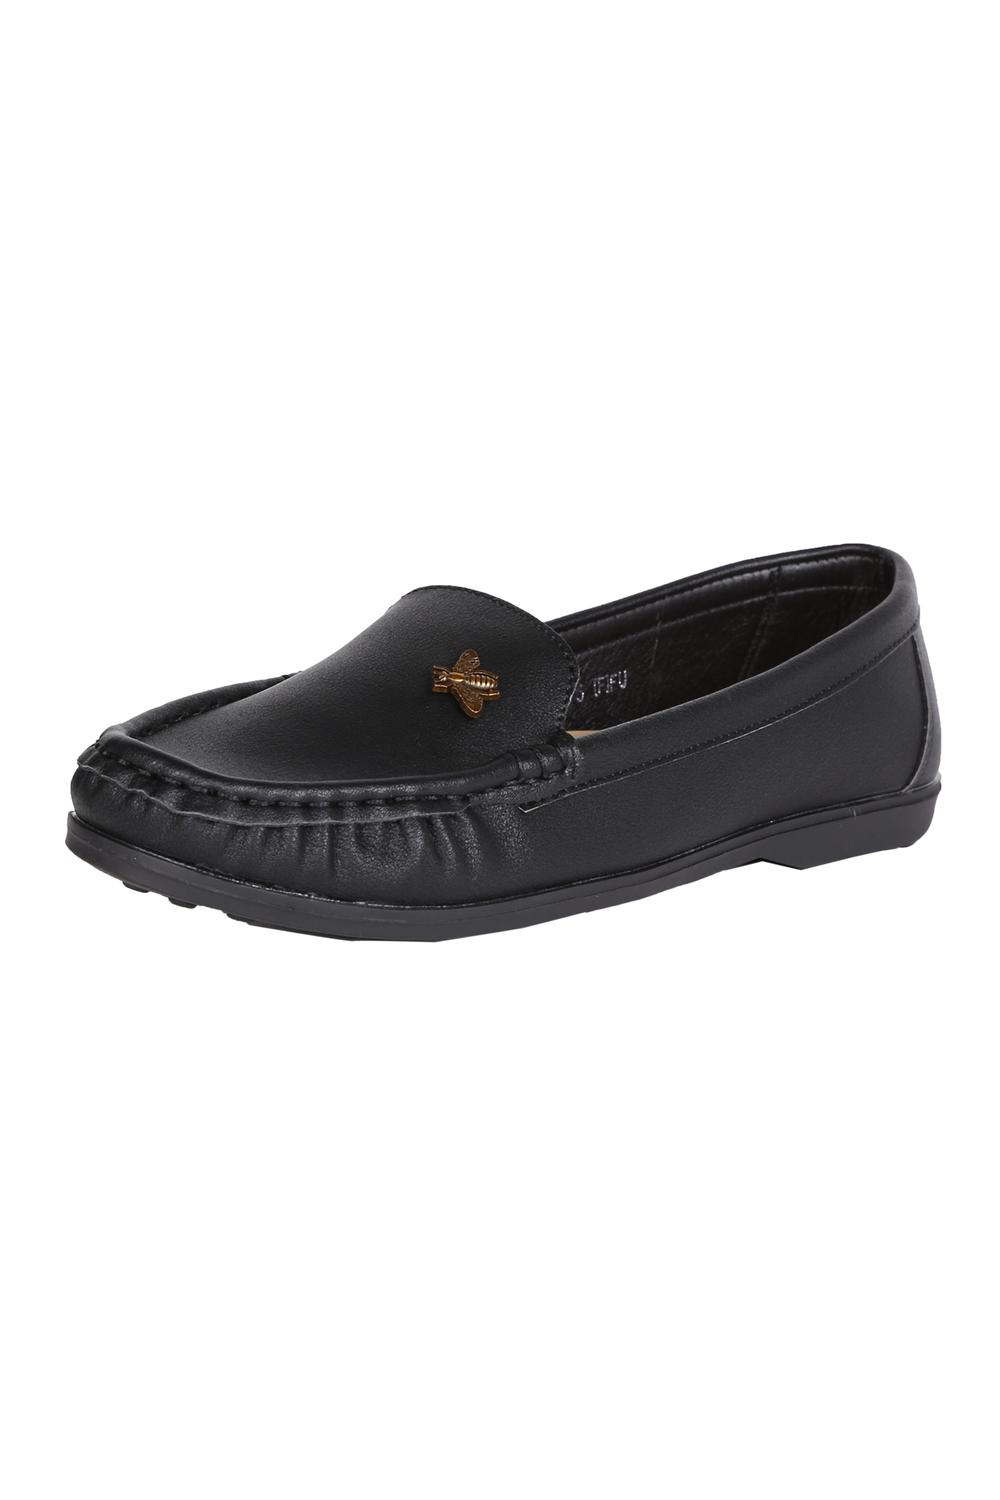 Allen Solly Black Loafers